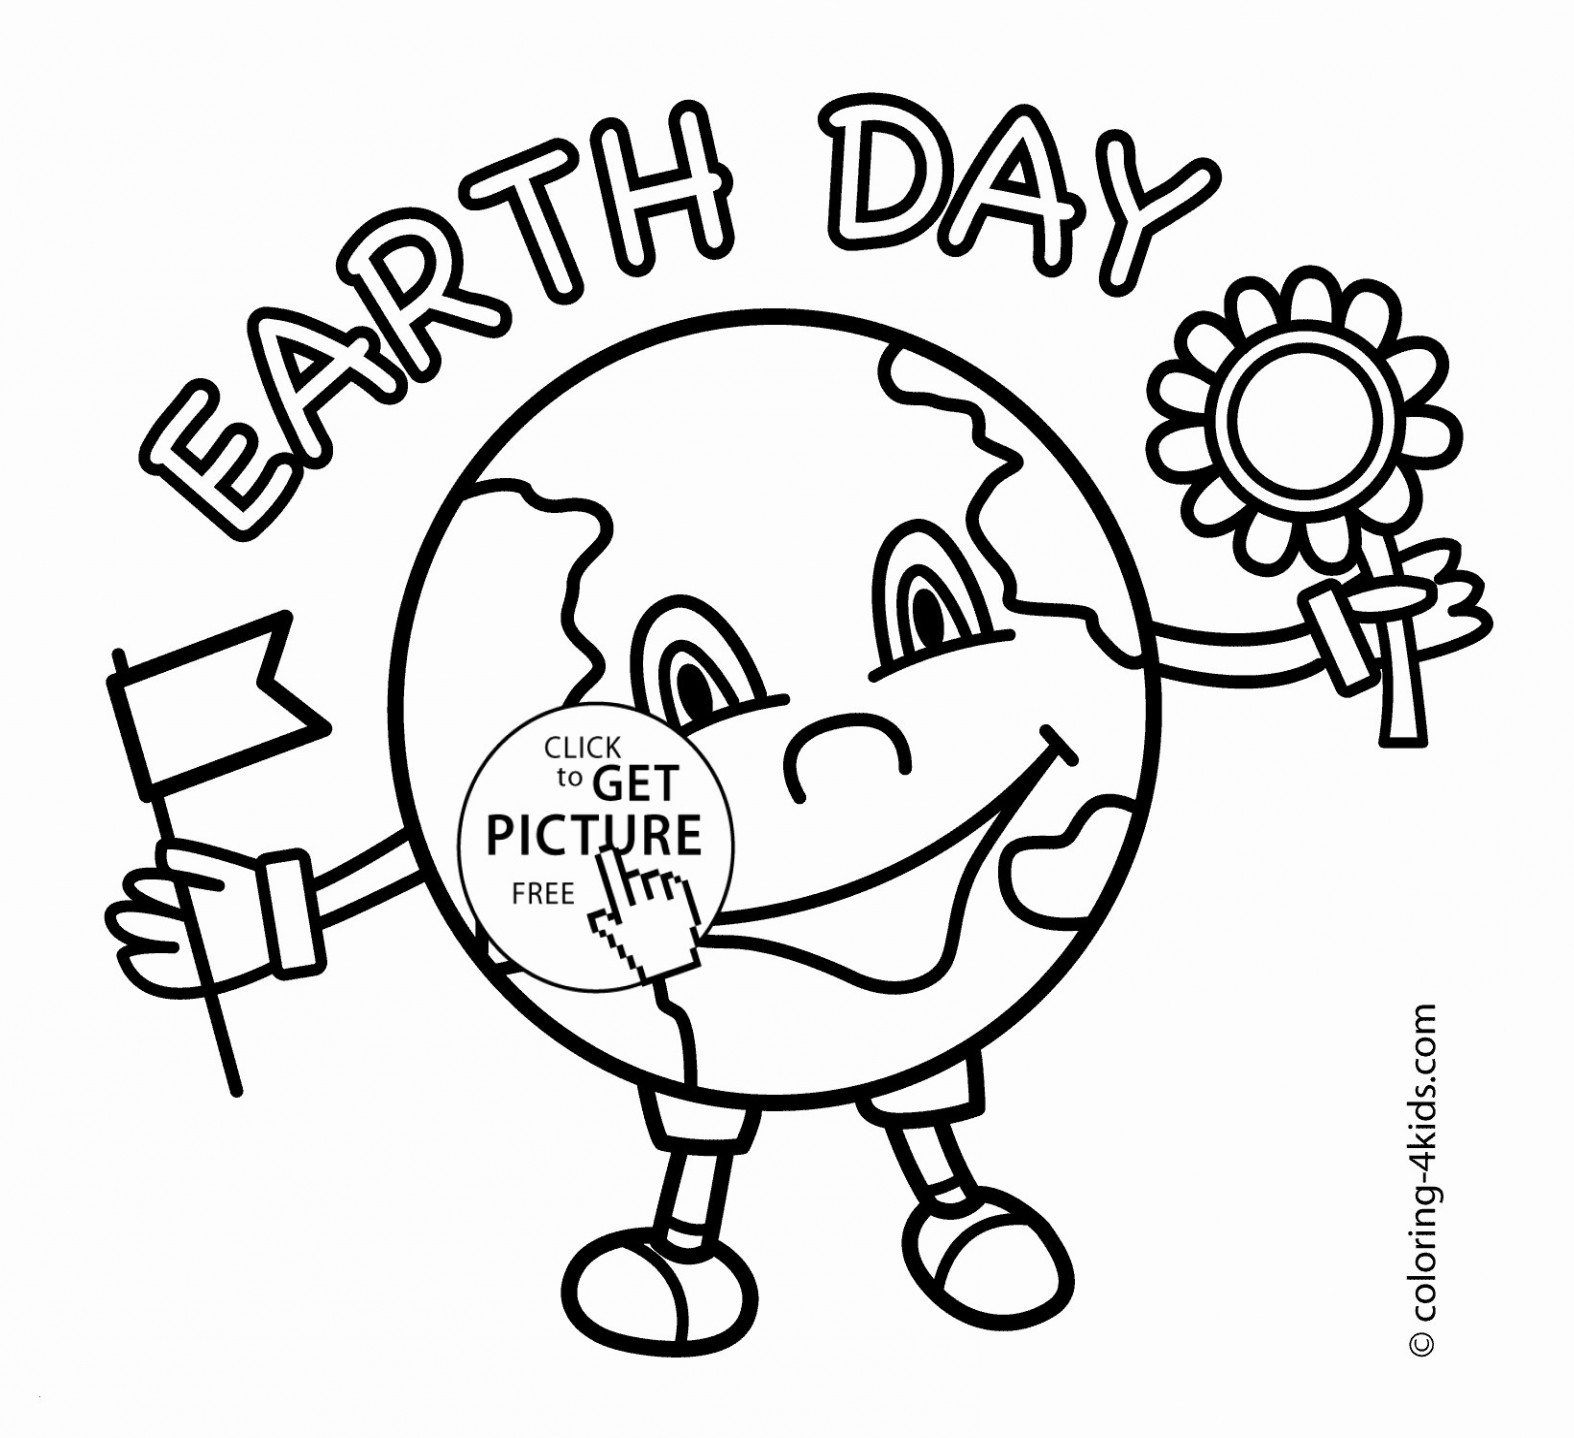 Free Printable Earth Day Coloring Pages And Activities Coloring Pages Earth Coloring Page Free Printable Day Pages And